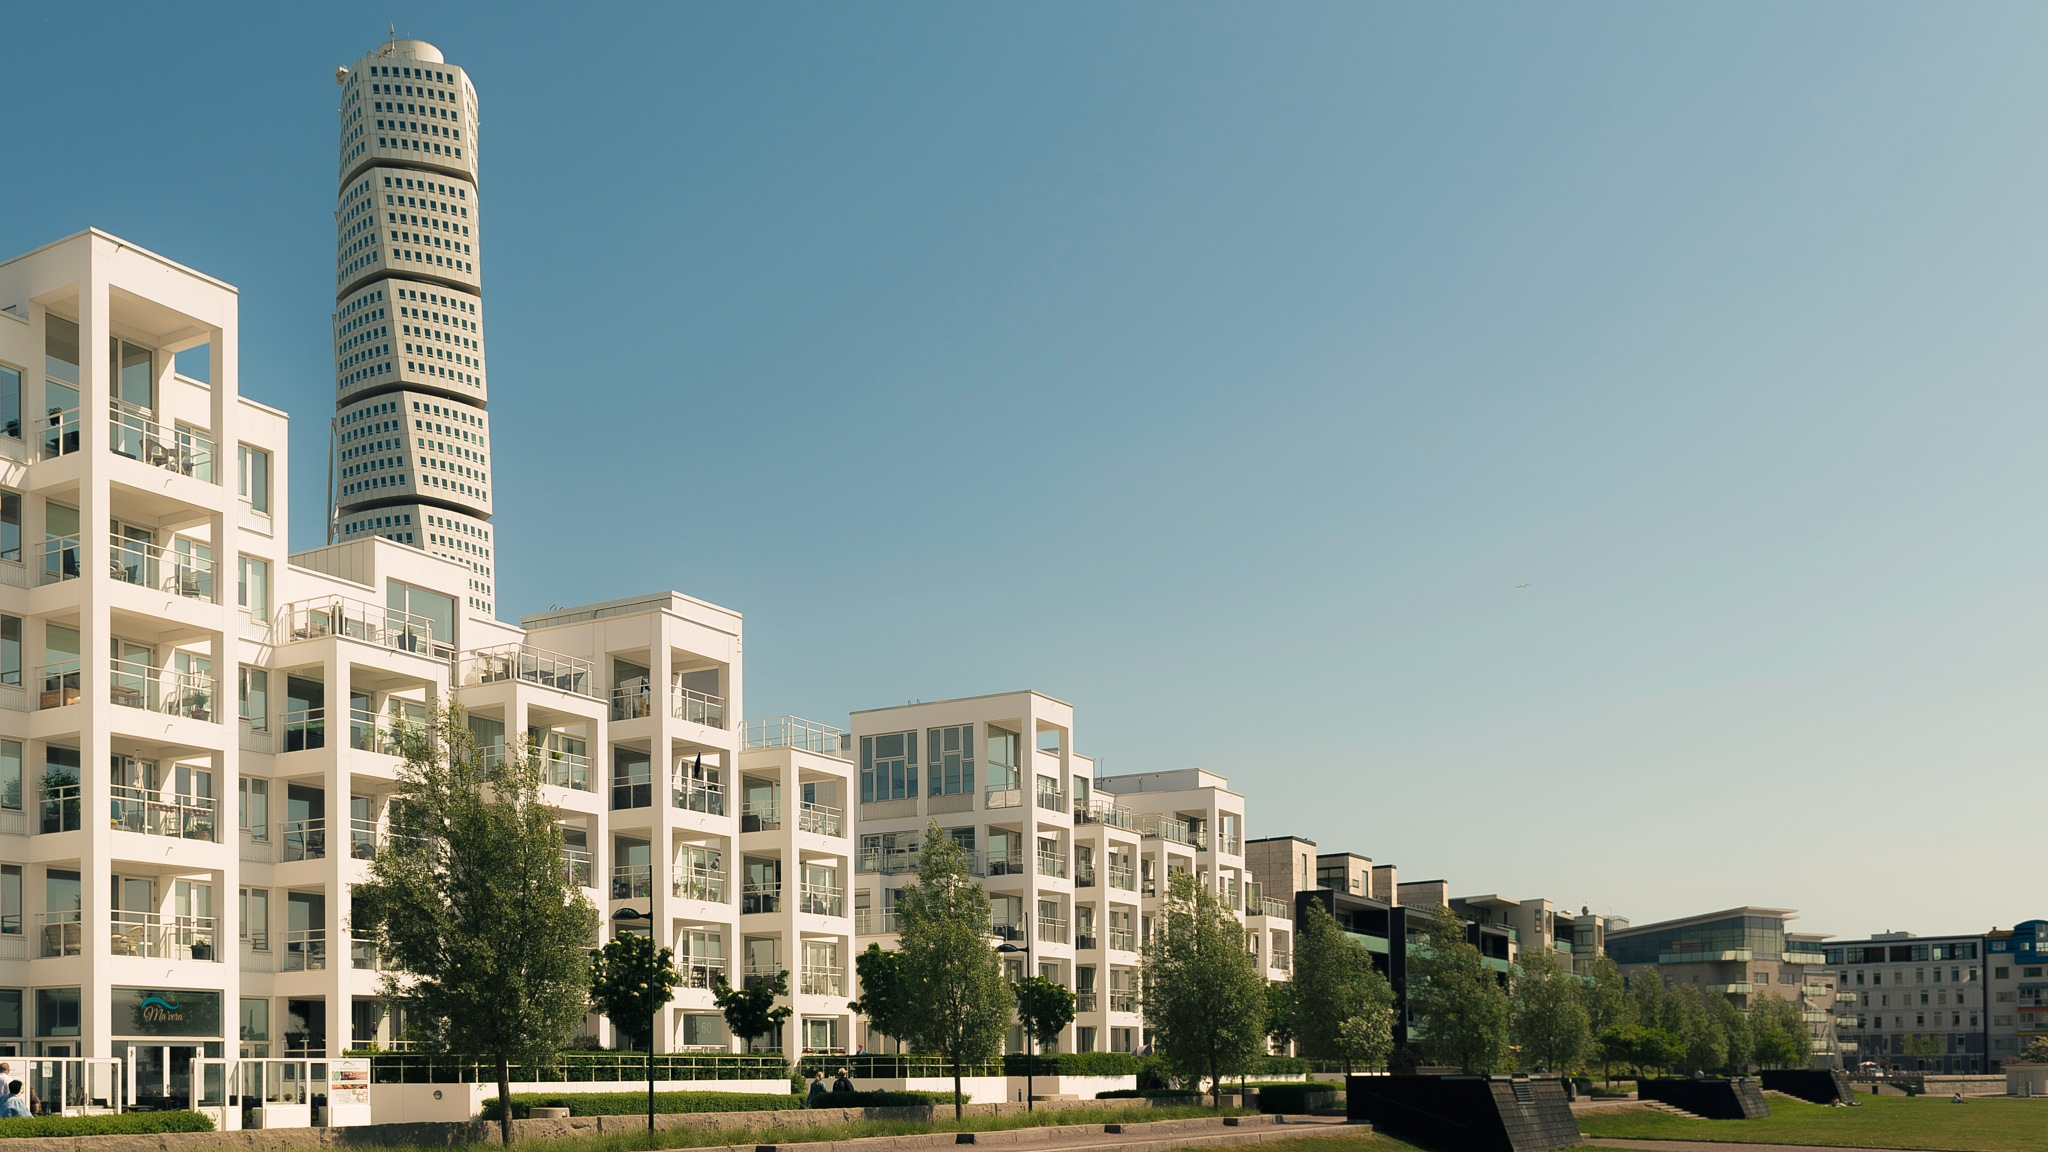 Turning Torso by wow-hunter